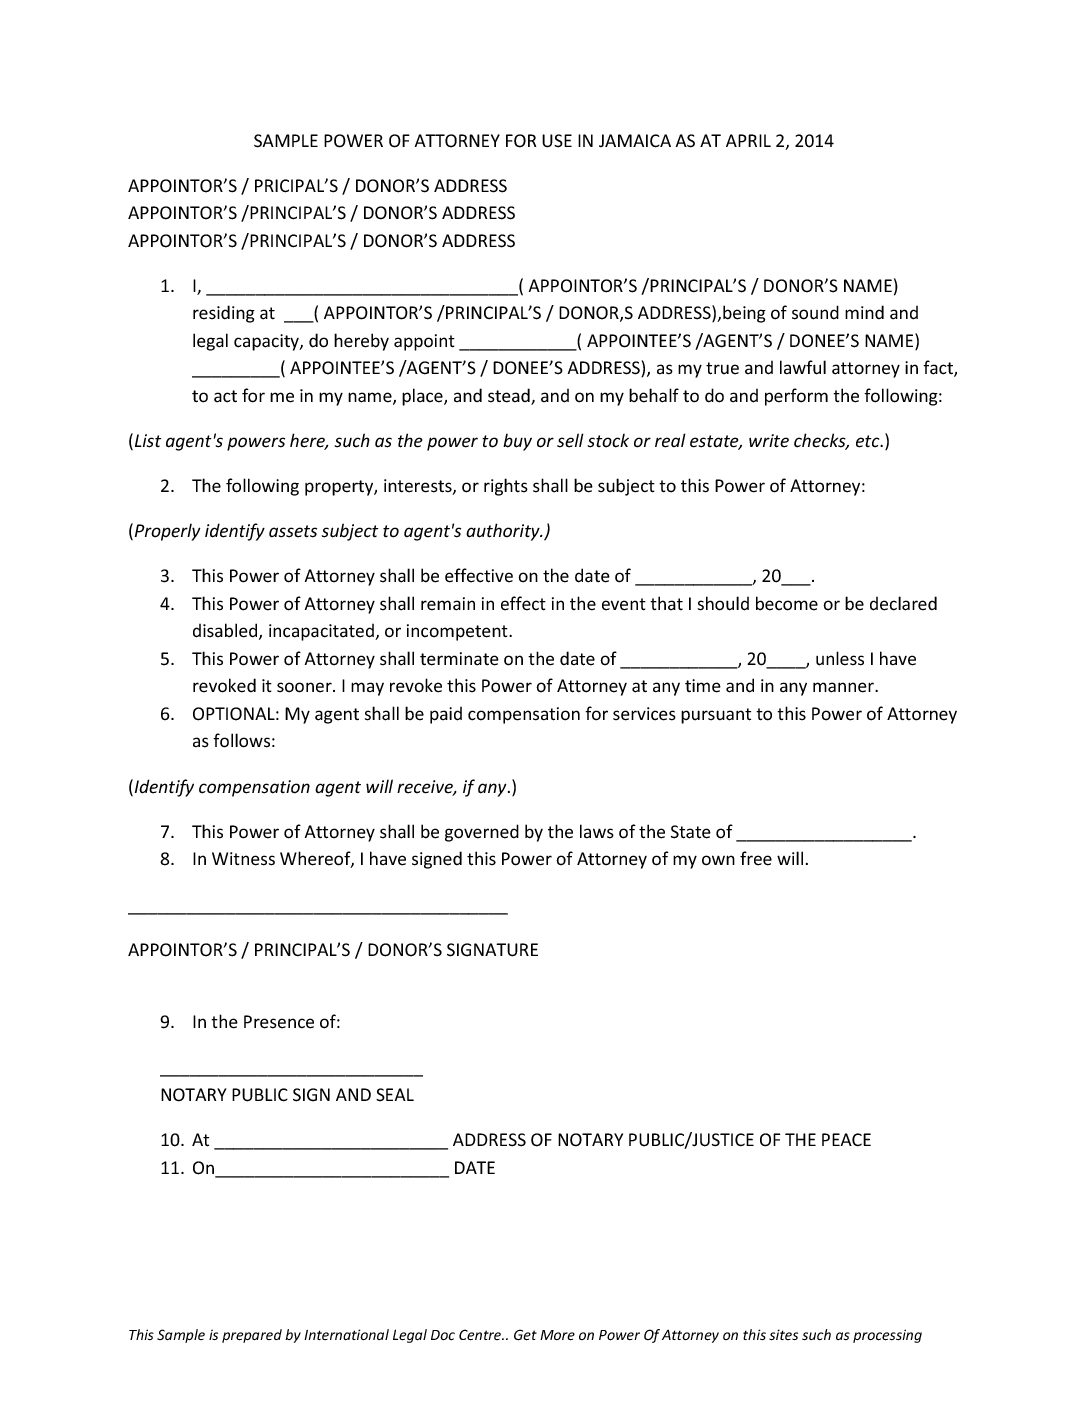 power of attorney form jamaica  Example of Power of Attorney document to use in Jamaica ...